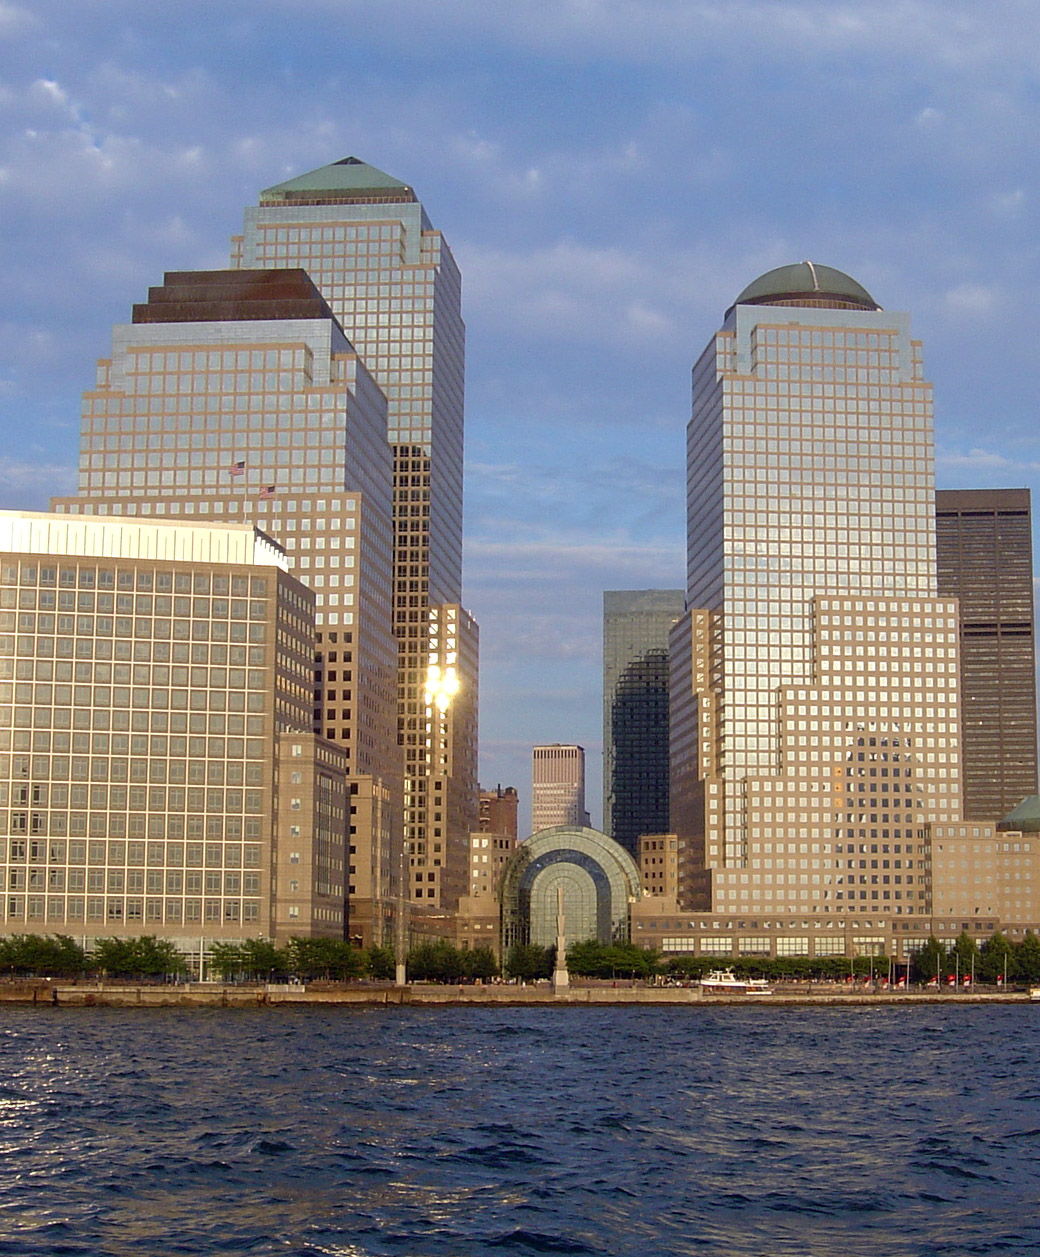 File:WORLD FINANCIAL CENTER.jpg - Wikipedia, the free encyclopedia